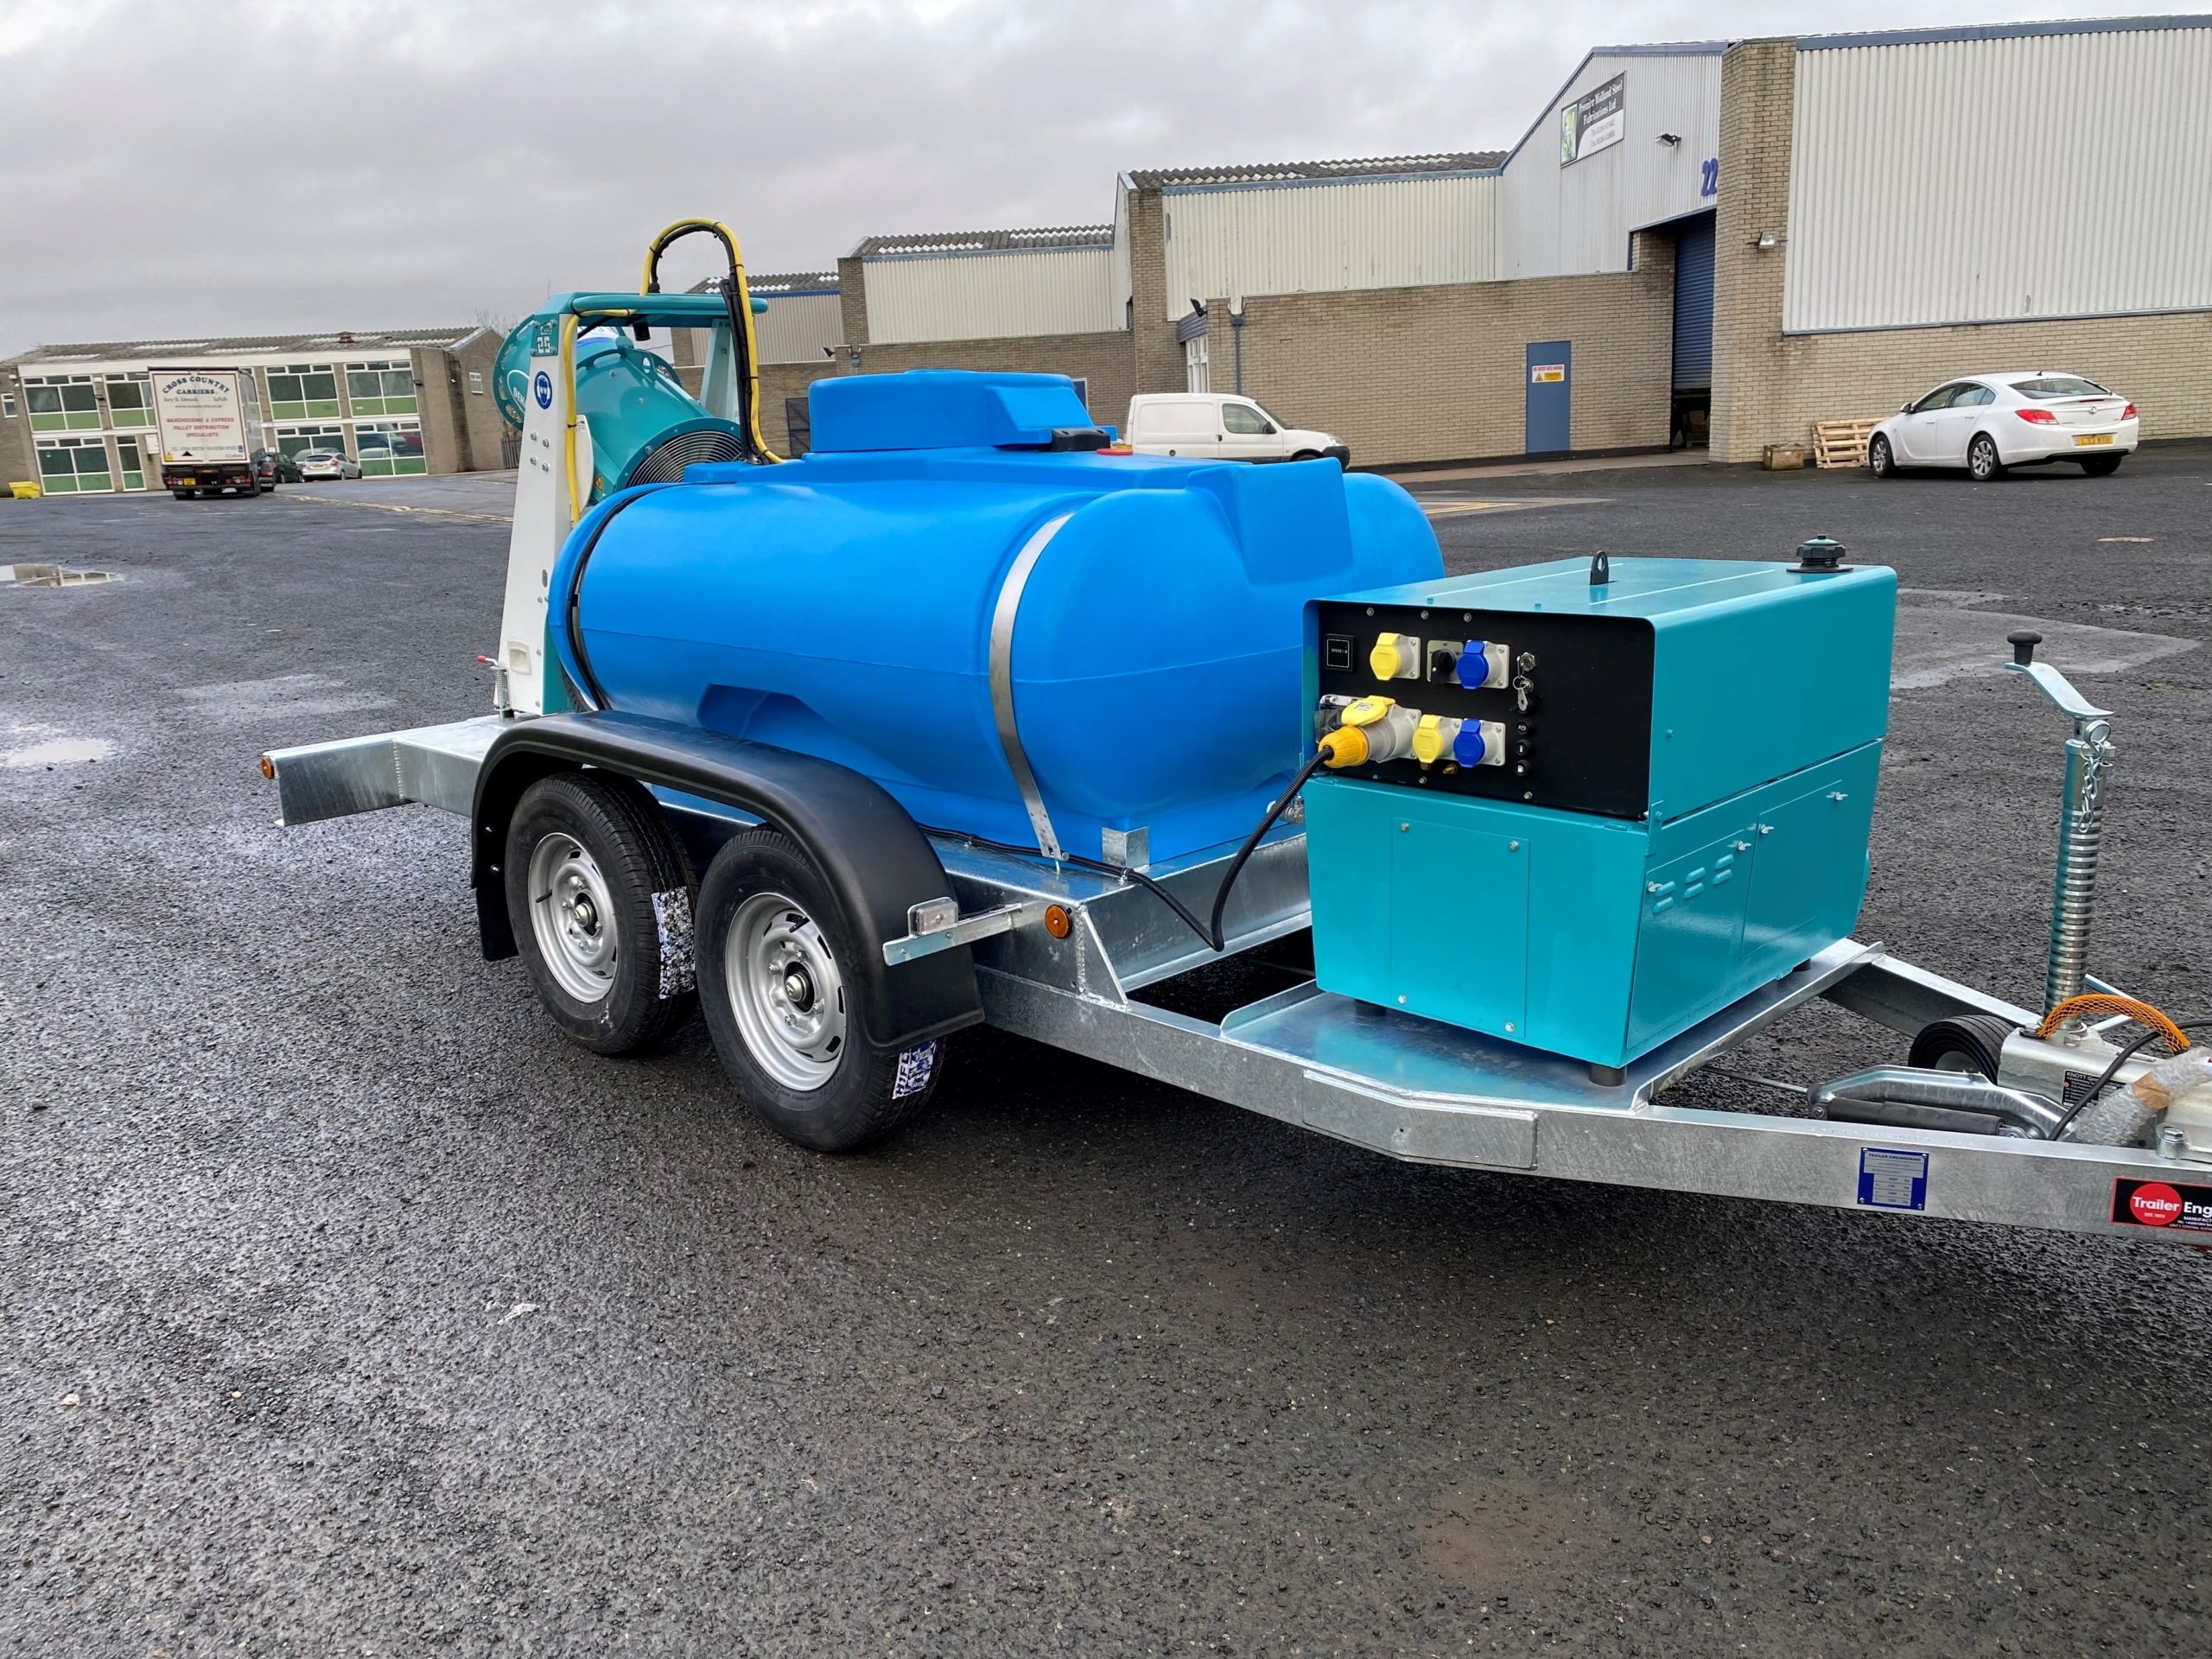 Marsh Machinery Water Bowser With Dust Cannon For Dust Suppression